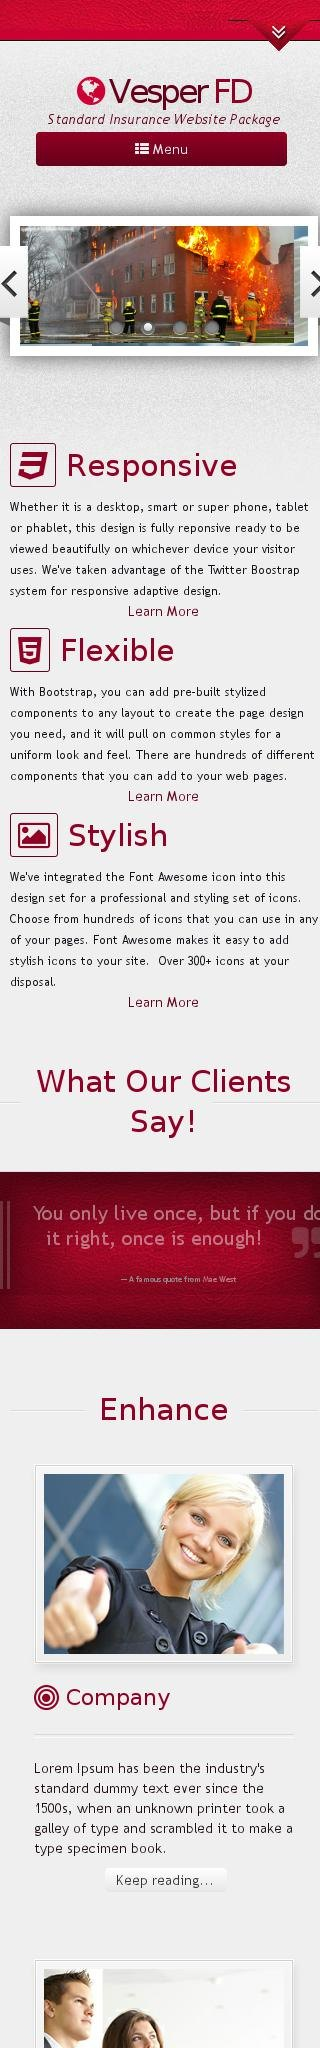 Mobile: Insurance Wordpress Theme